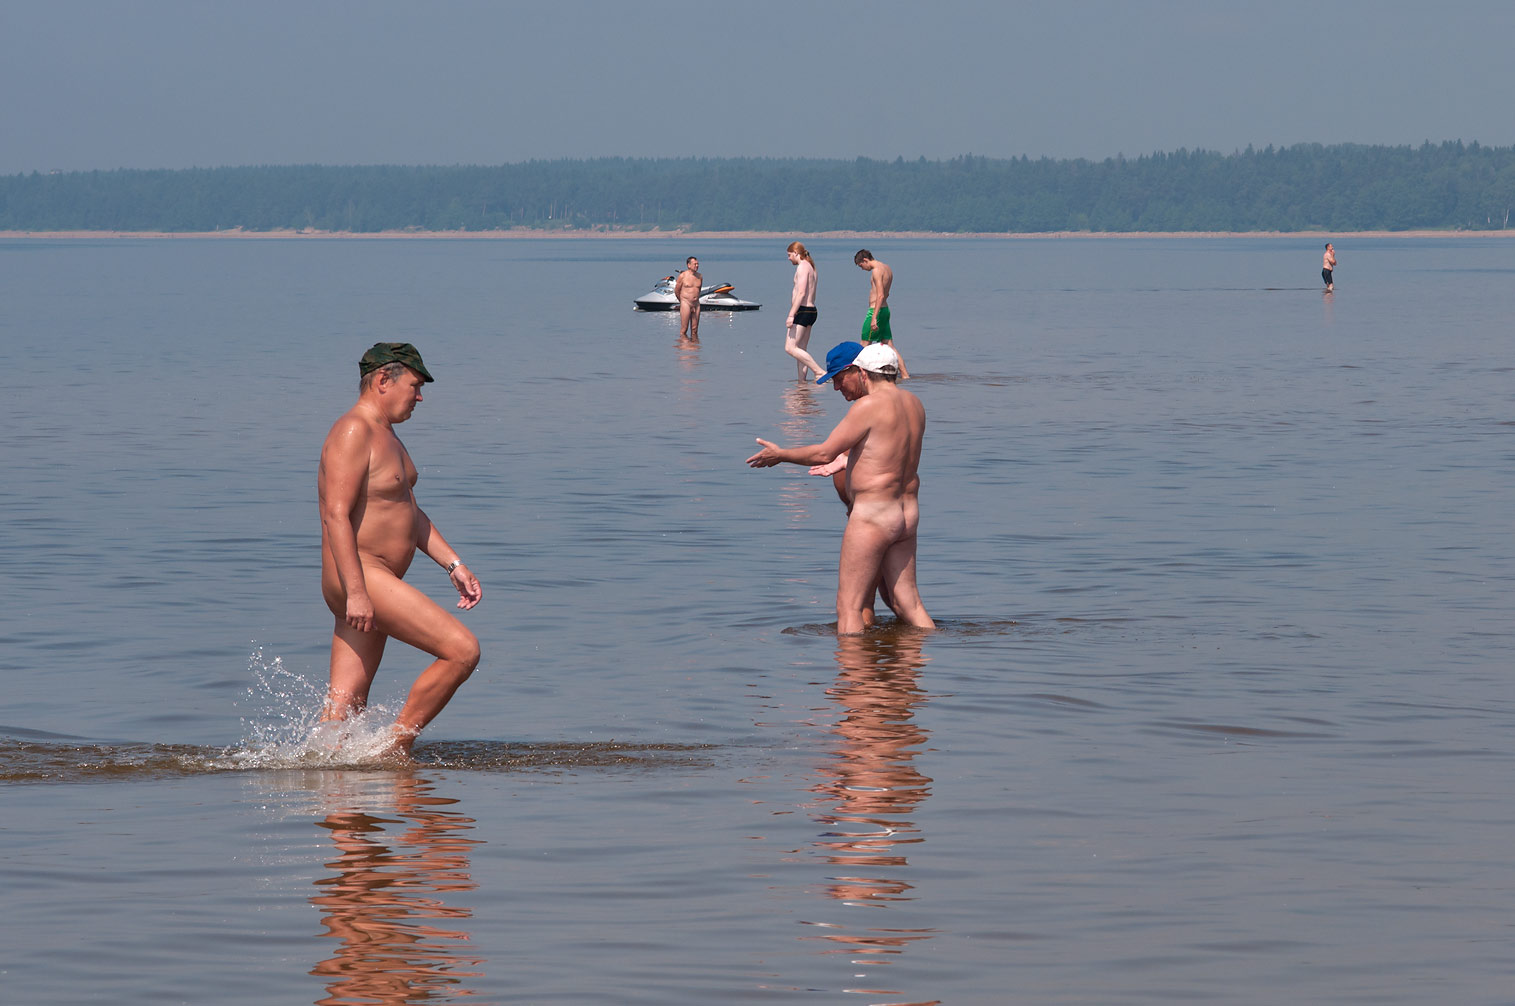 St petersburg nude beach